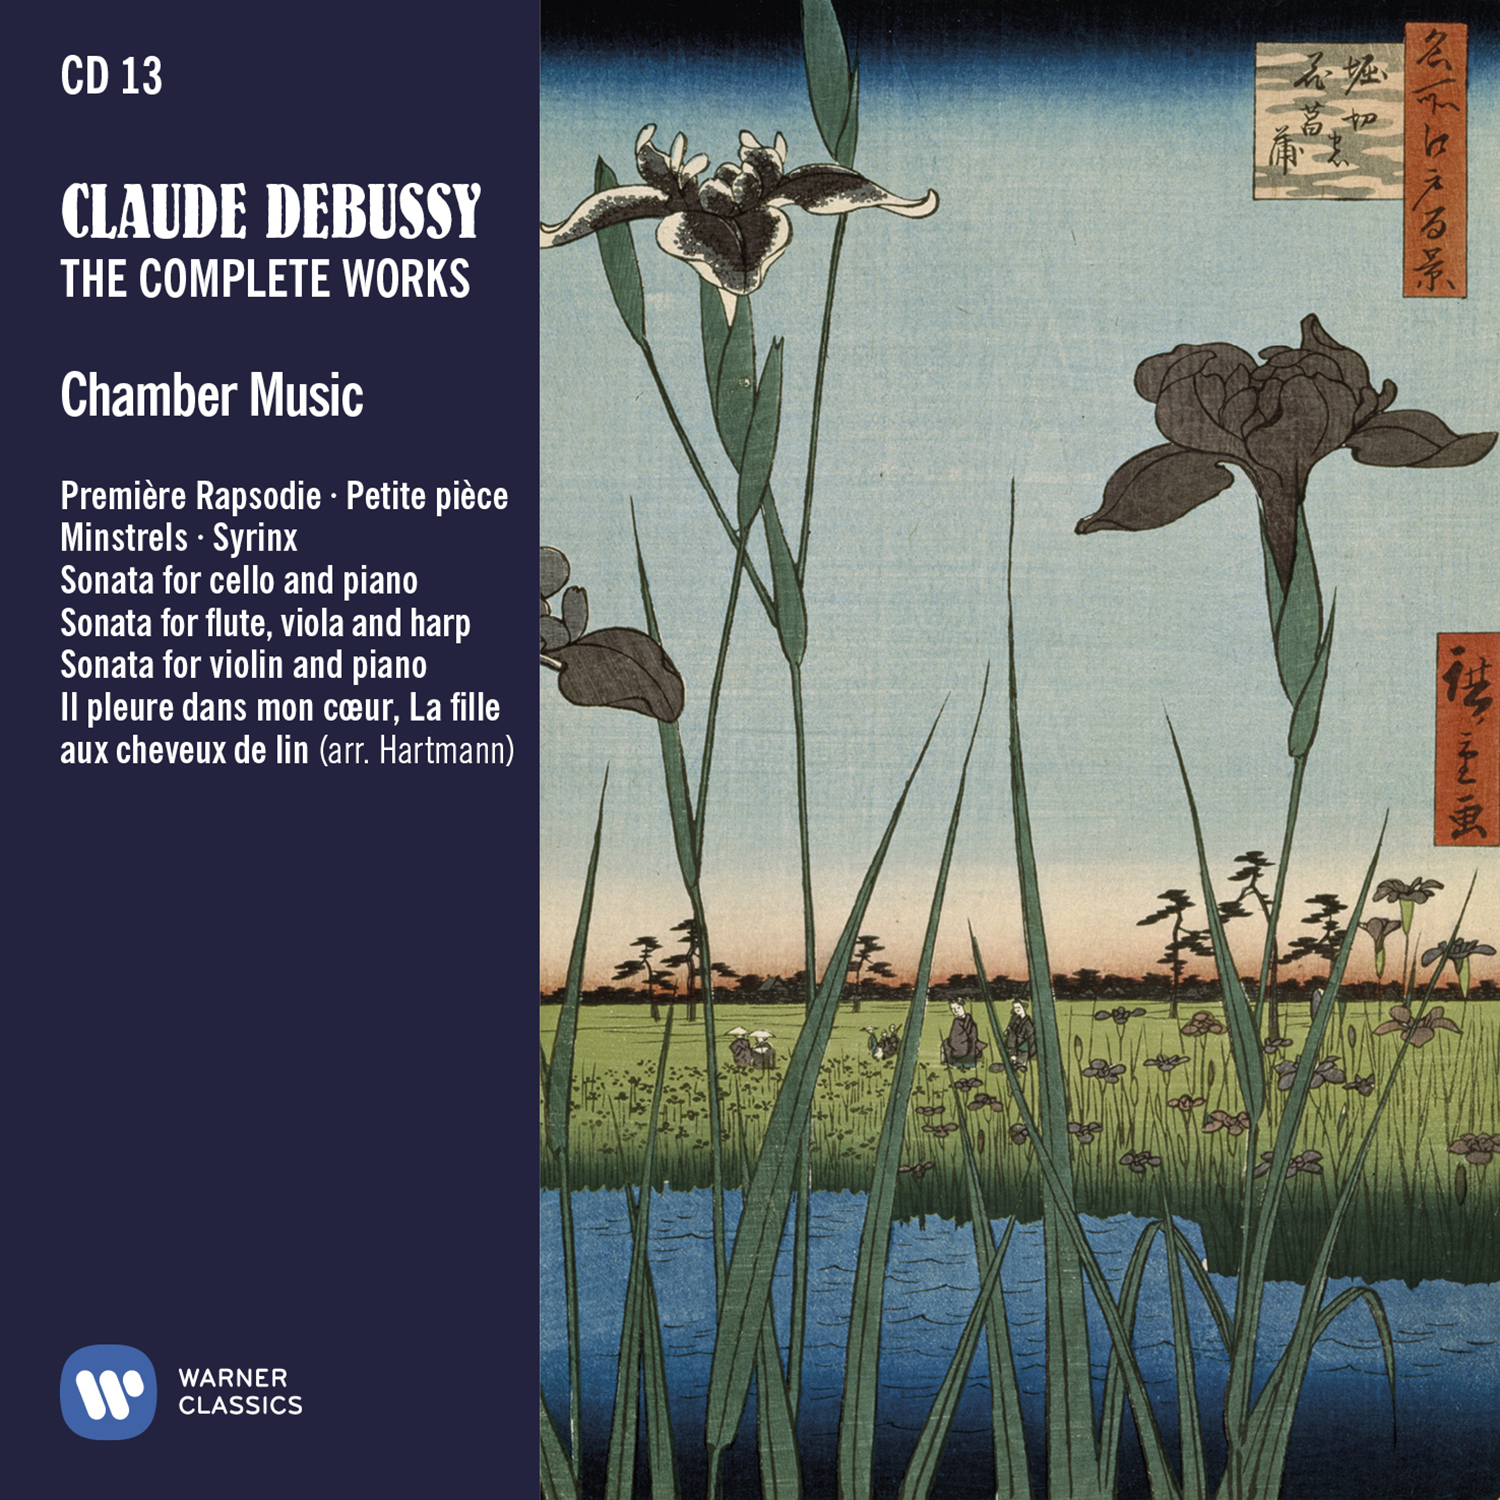 Debussy The complete works - Cover wallet CD13.jpg